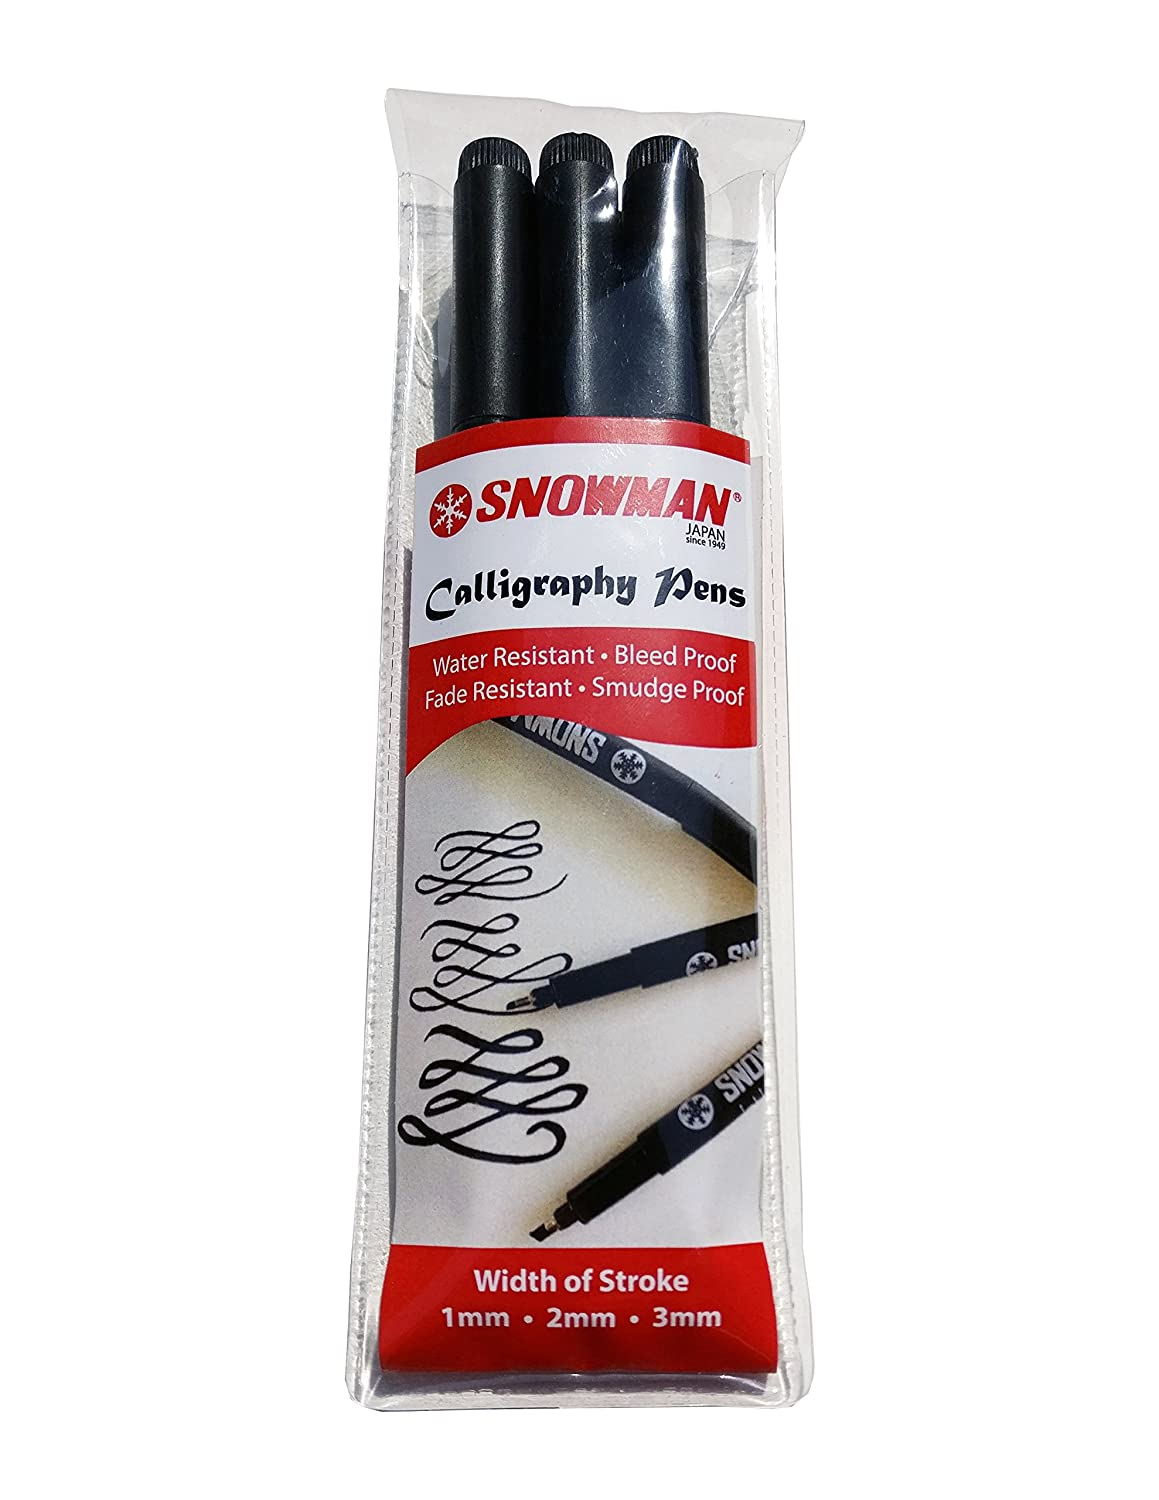 Snowman Calligraphy Pens - Set of 3 - Black (1.0, 2.0 & 3.0 mm)